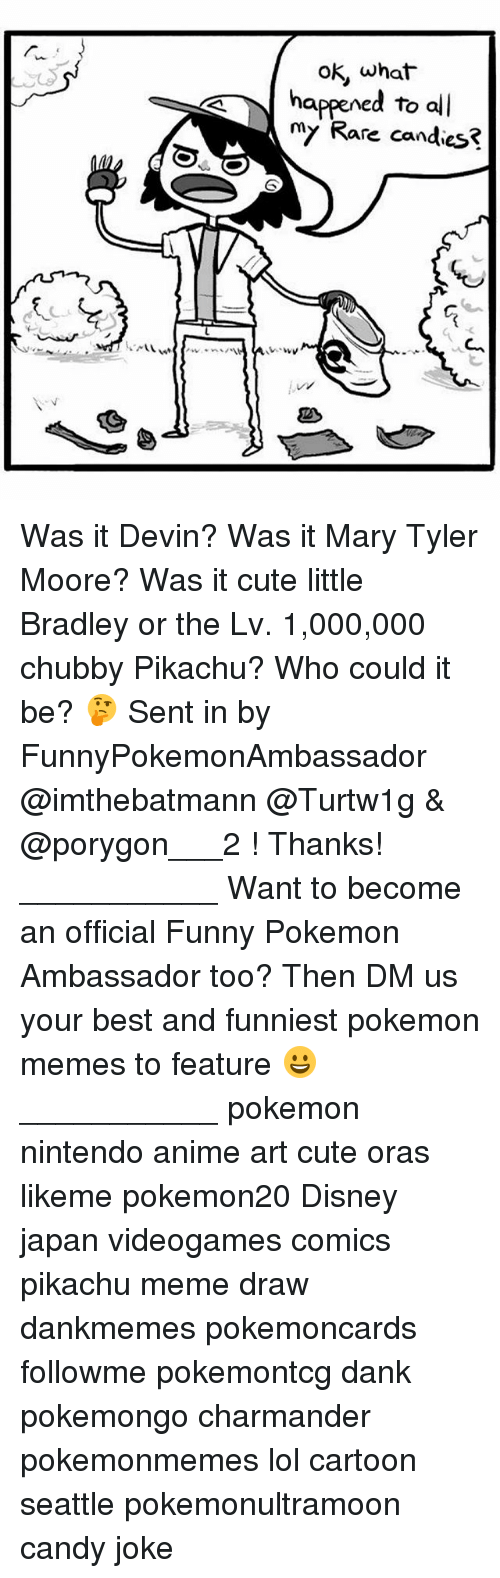 Funniest Pokemon: ok, what  oK, what  happened to all  my Rare candies? Was it Devin? Was it Mary Tyler Moore? Was it cute little Bradley or the Lv. 1,000,000 chubby Pikachu? Who could it be? 🤔 Sent in by FunnyPokemonAmbassador @imthebatmann @Turtw1g & @porygon___2 ! Thanks! ___________ Want to become an official Funny Pokemon Ambassador too? Then DM us your best and funniest pokemon memes to feature 😀 ___________ pokemon nintendo anime art cute oras likeme pokemon20 Disney japan videogames comics pikachu meme draw dankmemes pokemoncards followme pokemontcg dank pokemongo charmander pokemonmemes lol cartoon seattle pokemonultramoon candy joke